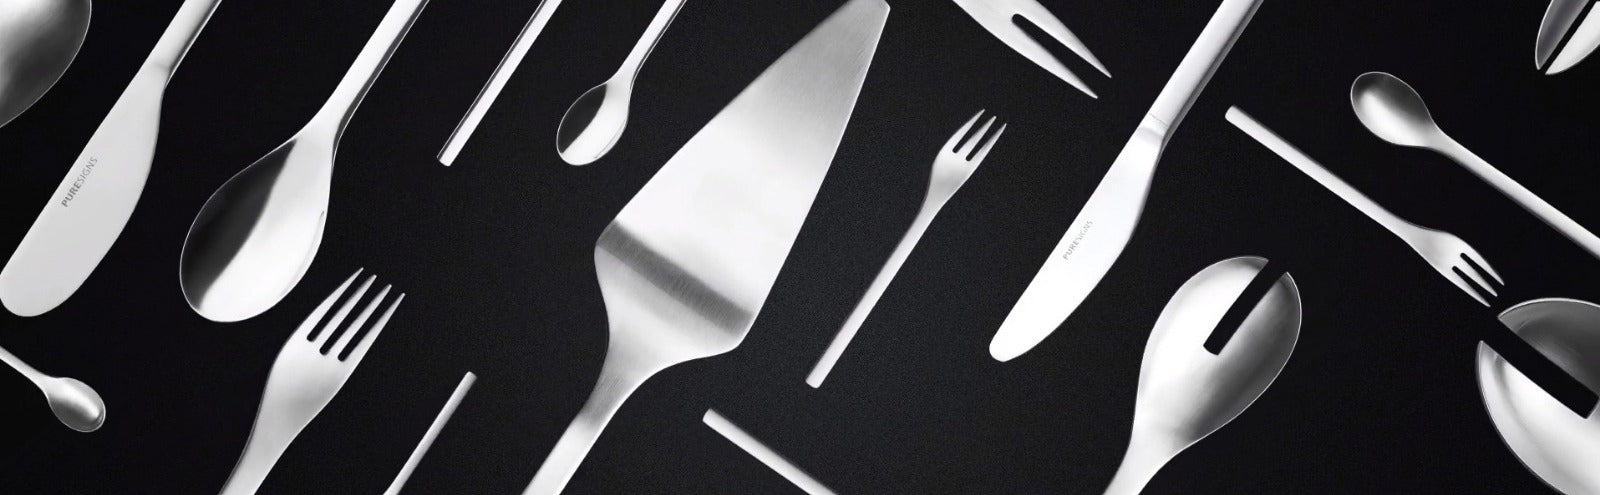 Cutlery from Puresigns